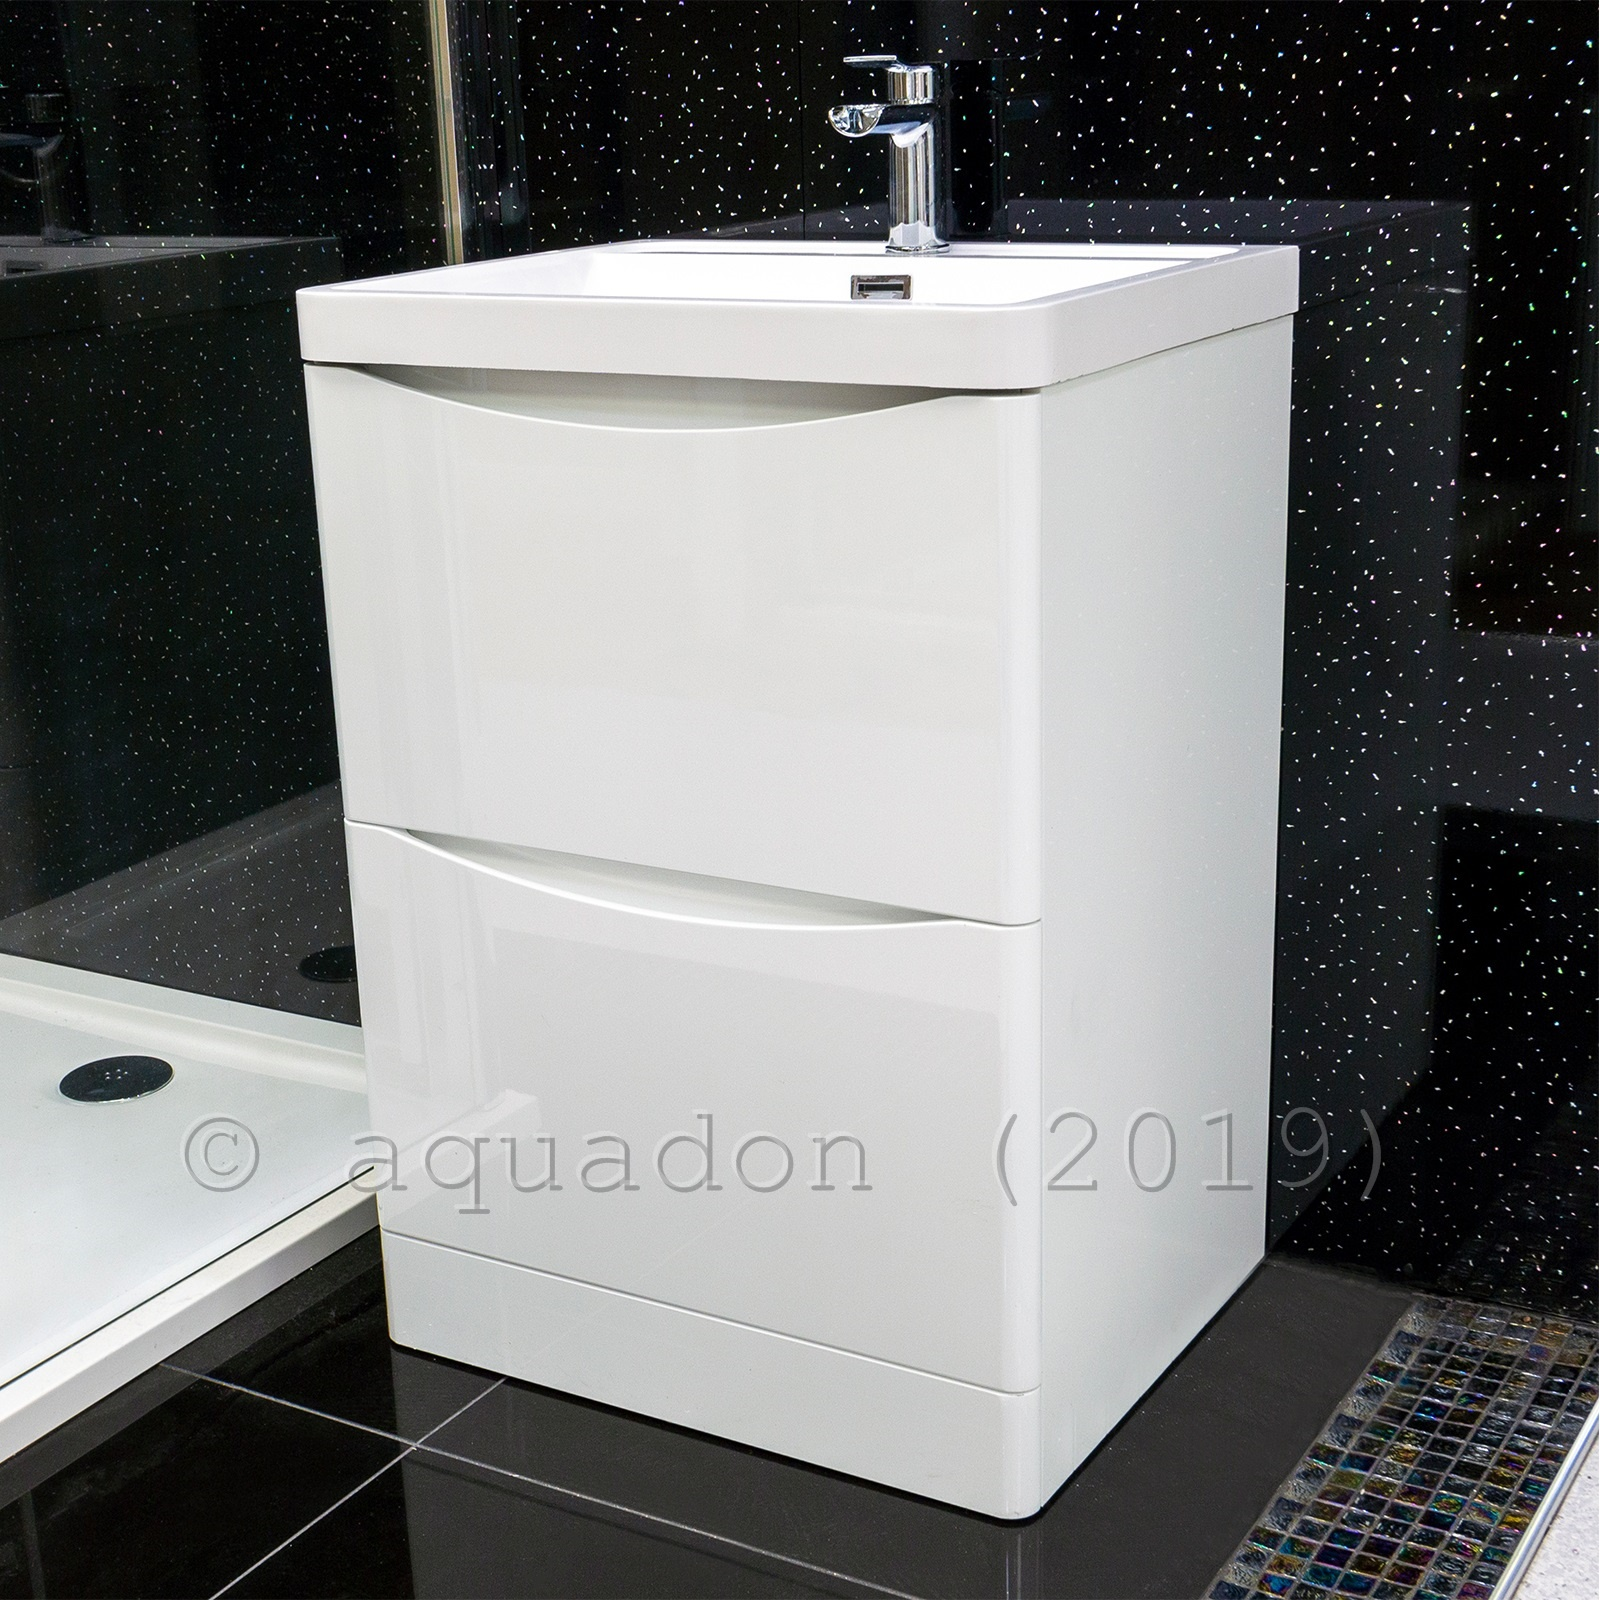 Picture of: Nrg 600mm Gloss White 2 Drawer Floor Standing Bathroom Cabinet Storage Furniture Vanity Sink Unit Free Tap And Waste Home Kitchen Wash Stands Vanity Units